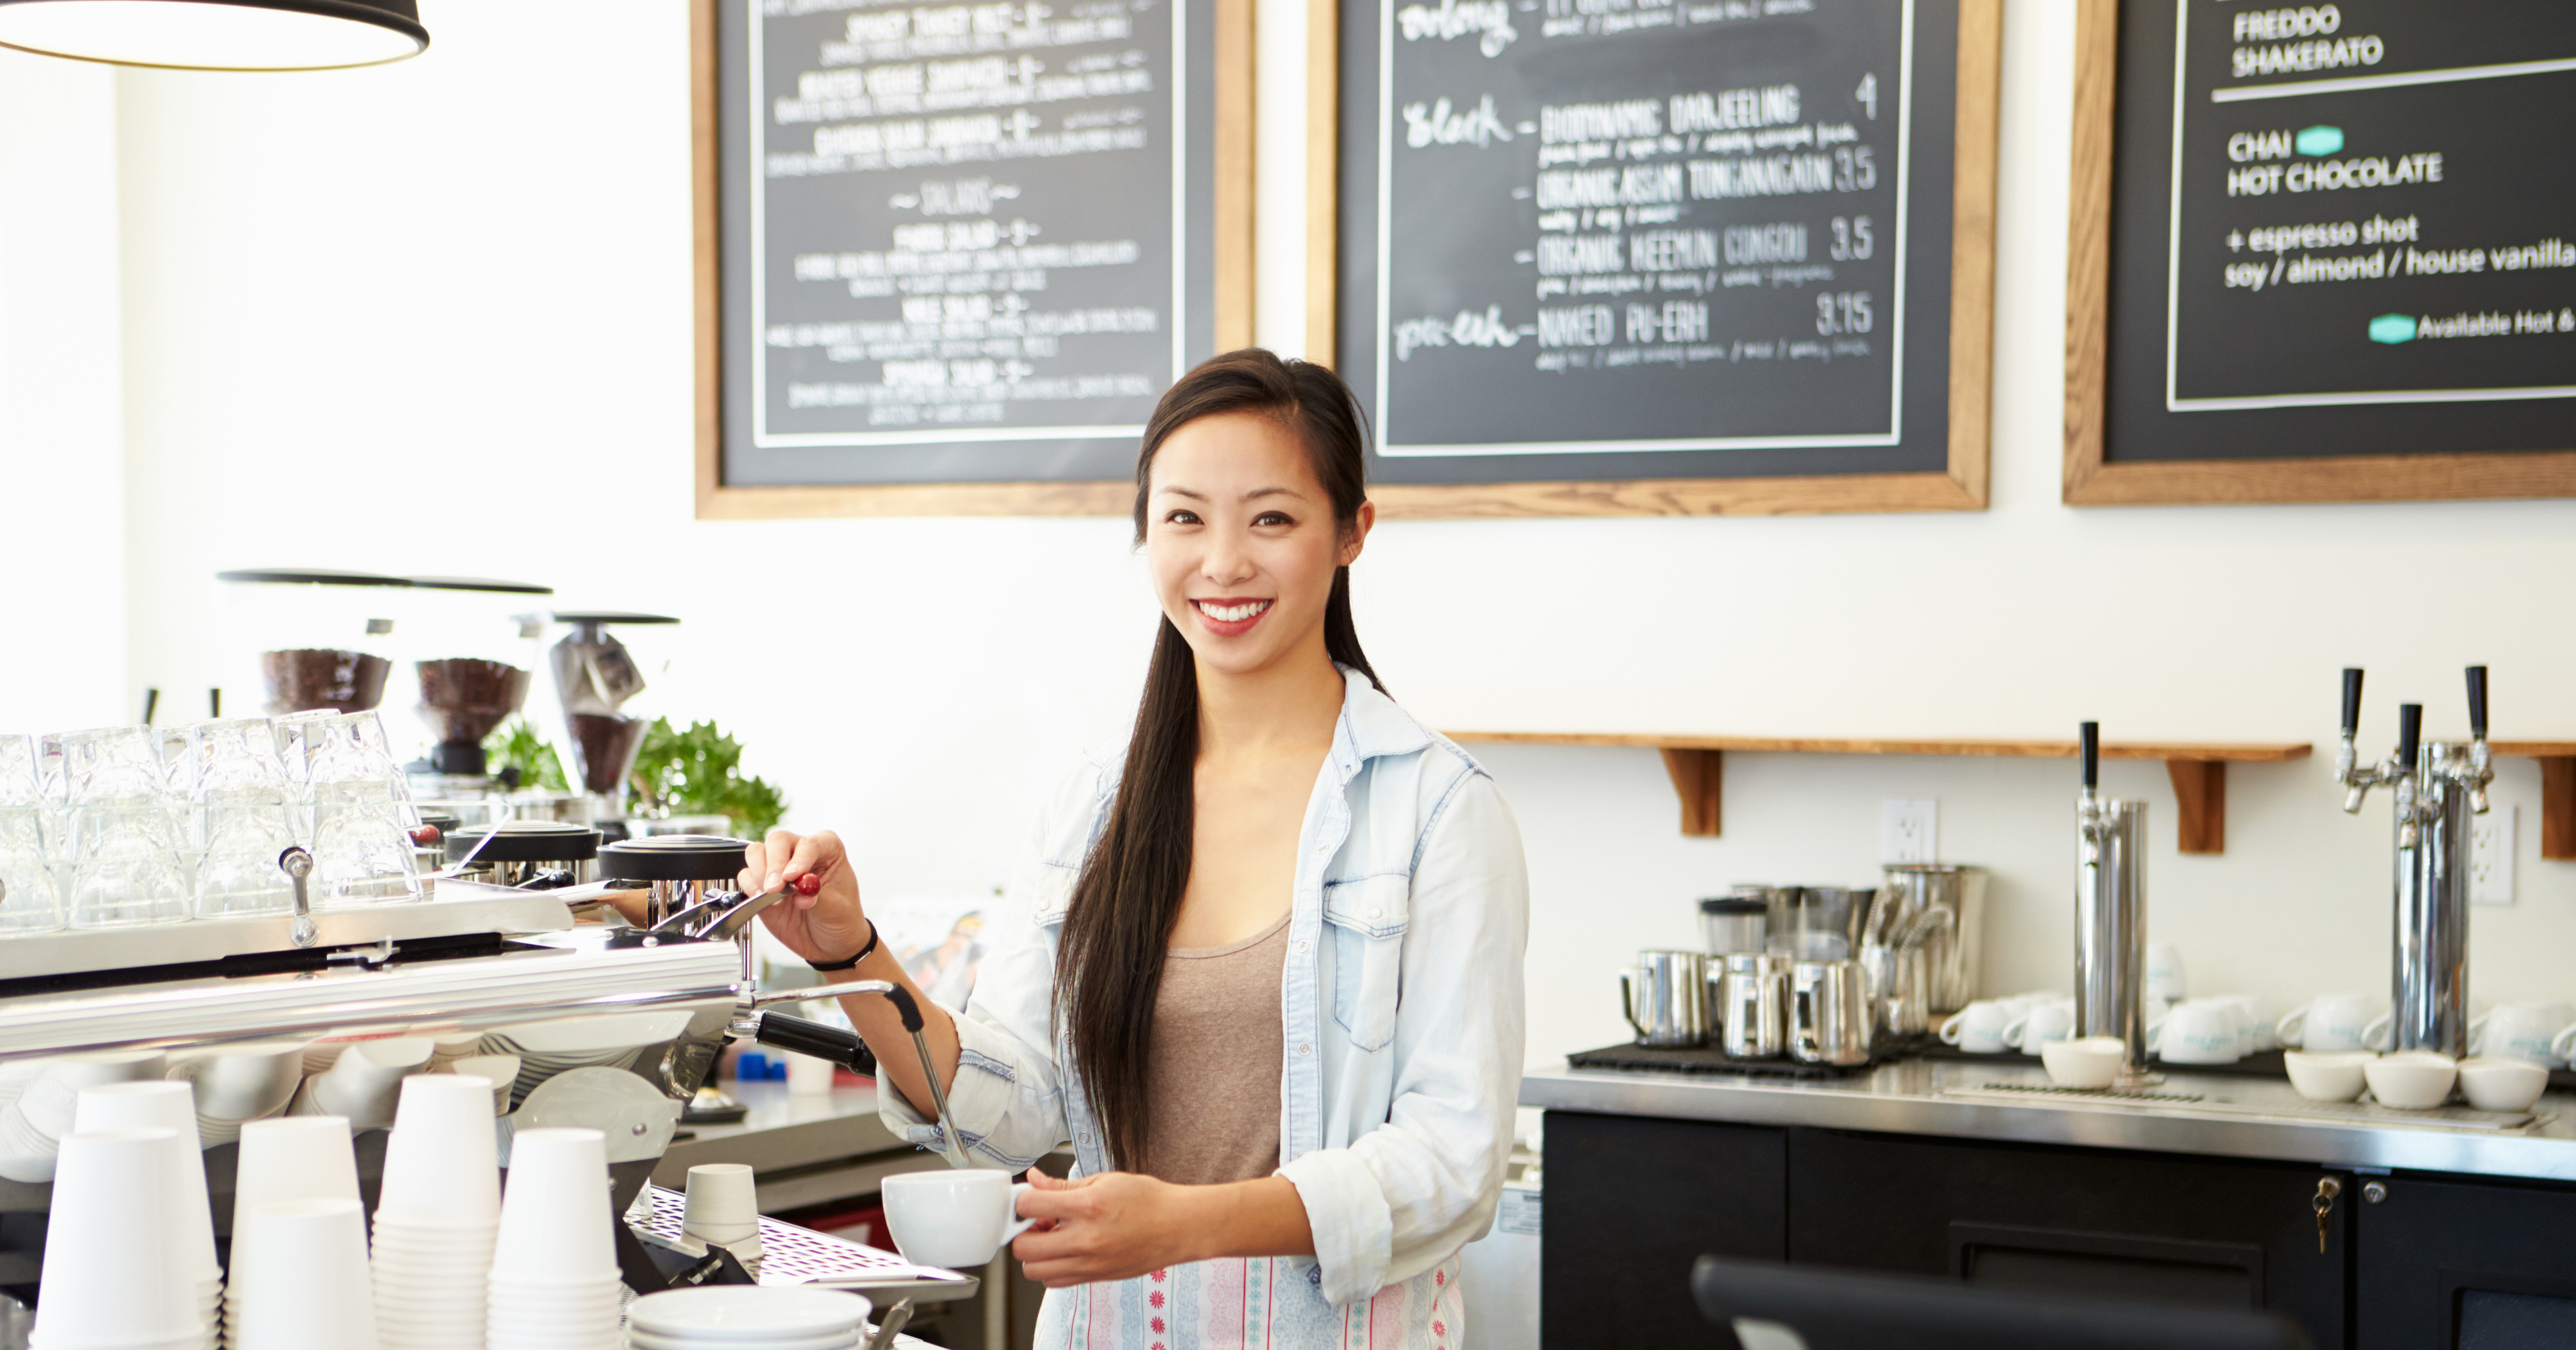 3 Success Strategies from Real Small Business Owners